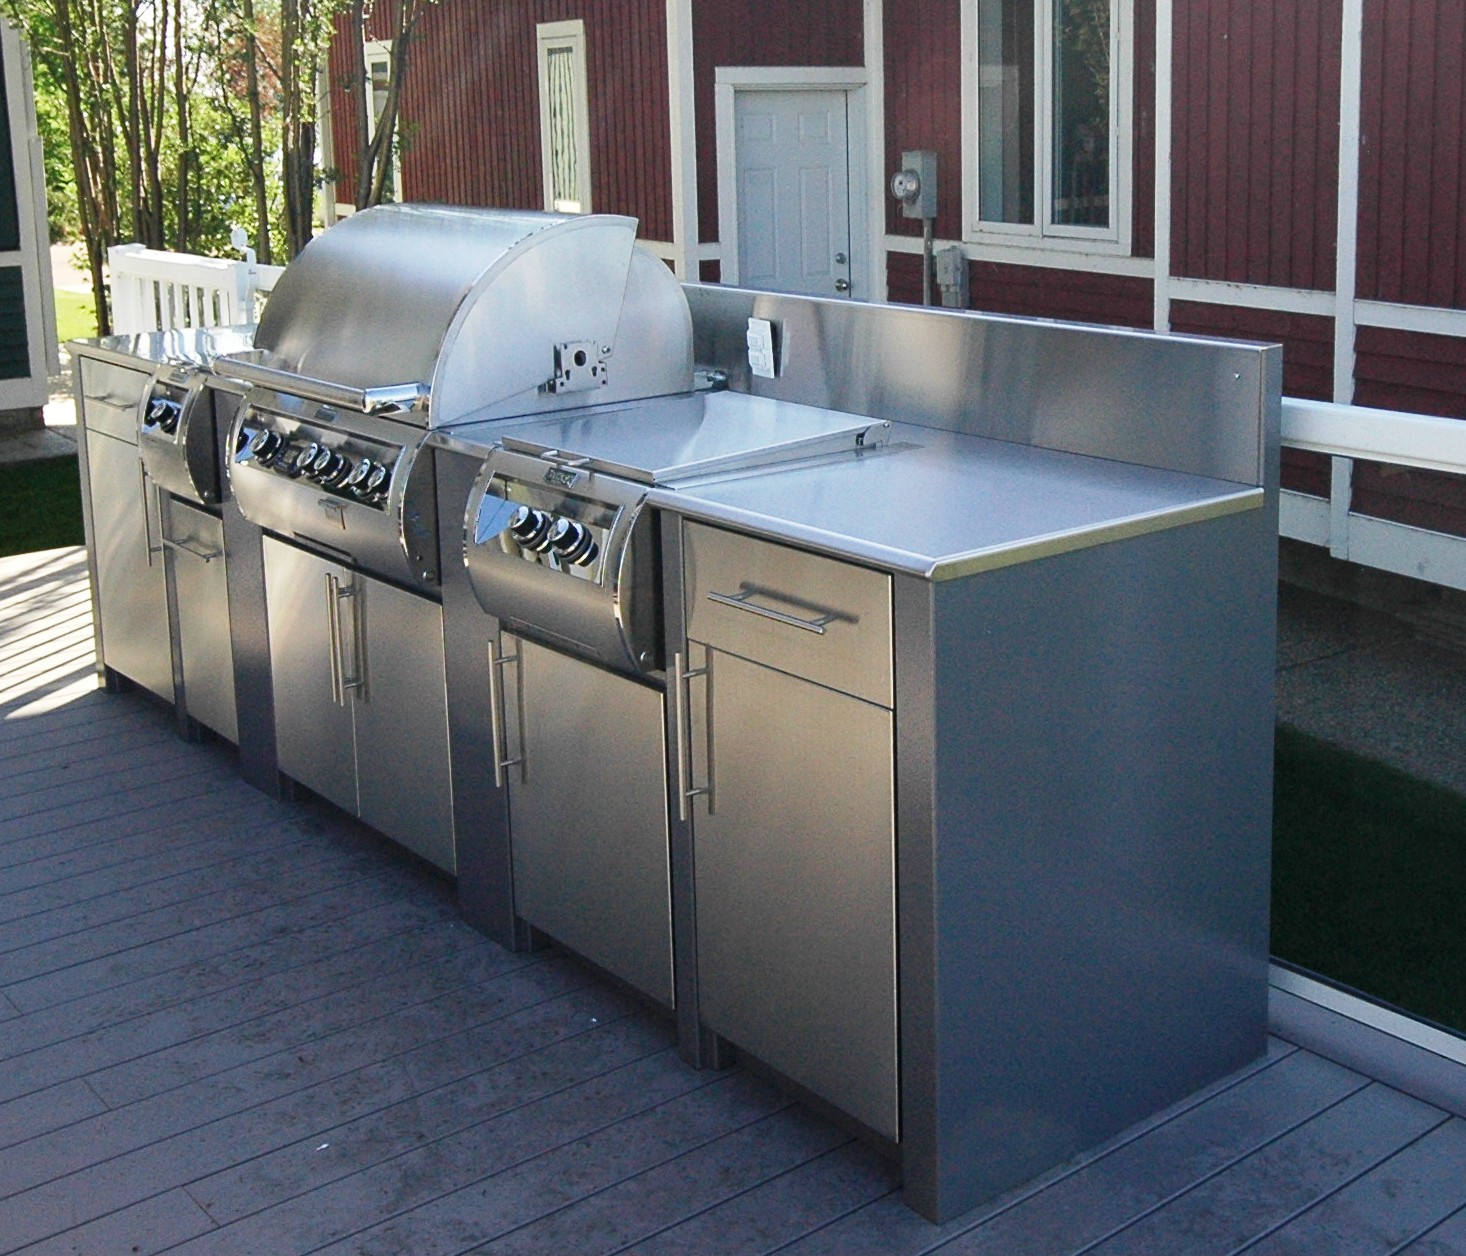 Precious Free Standing Outdoor Kitchen Stainless Steel Outdoor Kitchens Steelkitchen Outdoor Kitchen Cabinets Ideas Outdoor Kitchen Cabinets Sarasota houzz 01 Outdoor Kitchen Cabinets